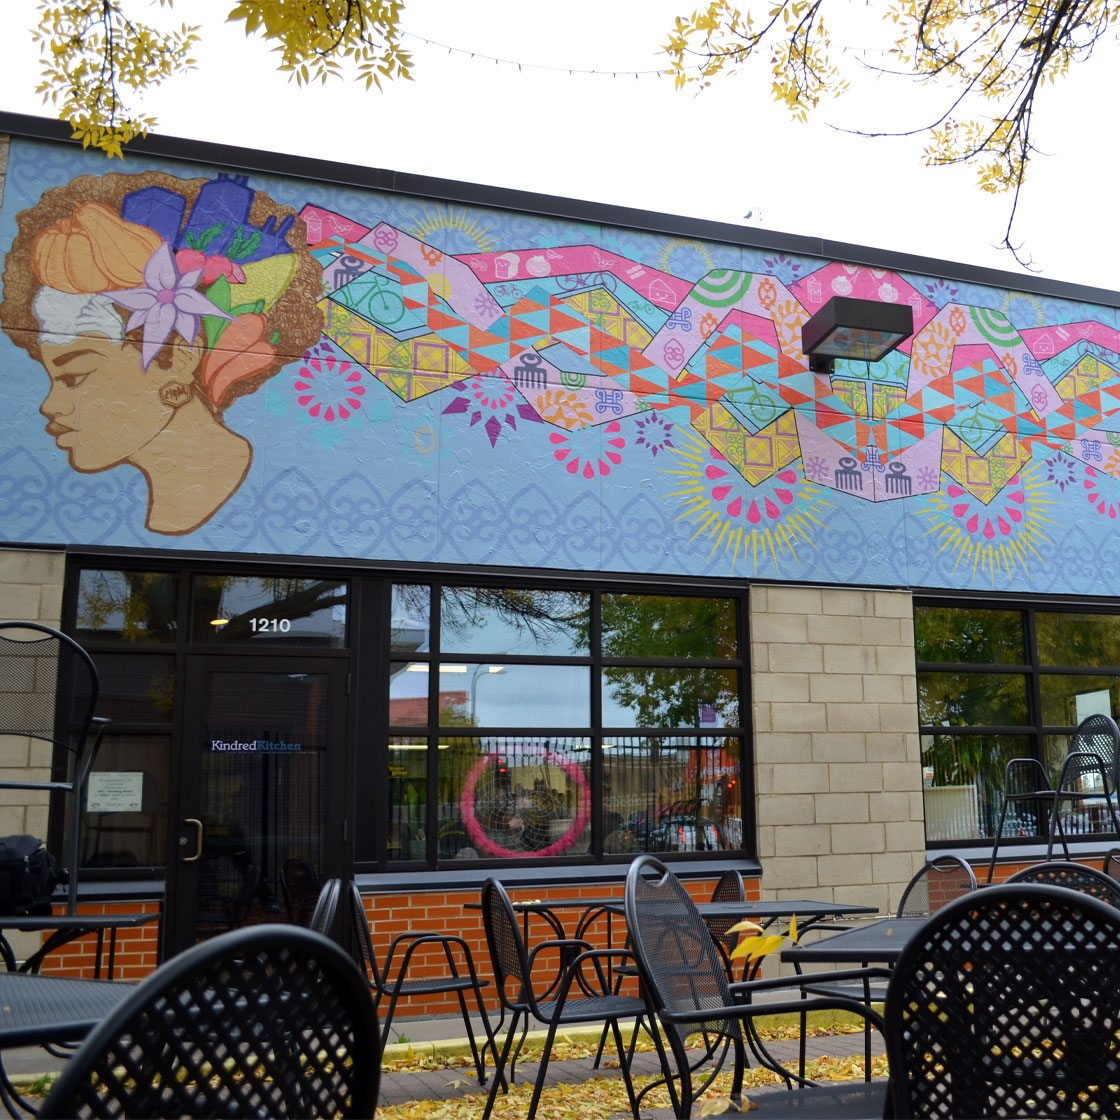 A restaurant patio decorated by a large-scale colorful mural of a woman with long flowing colorful hair